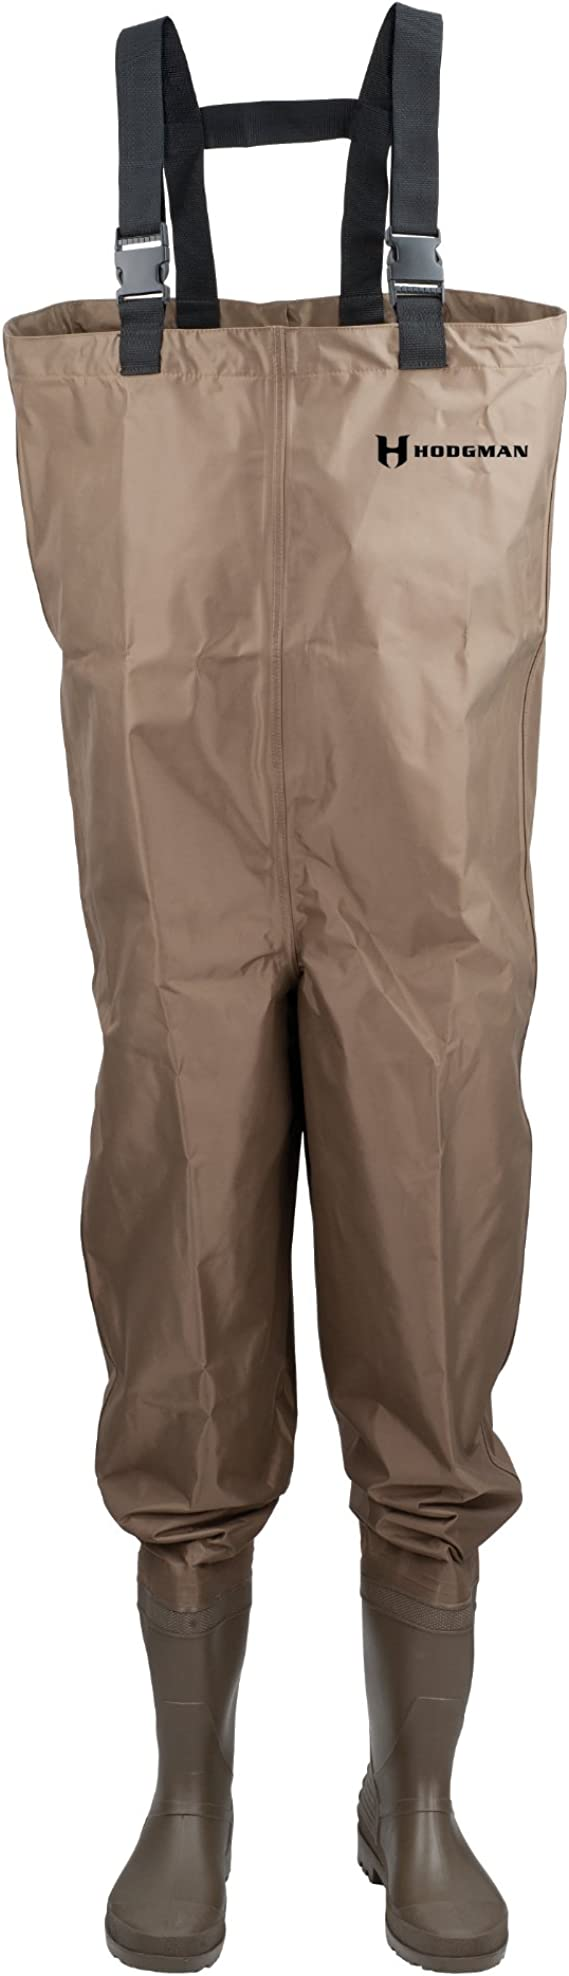 Best Fishing Waders : Hodgman Mackenzie Nylon and PVC Cleated Bootfoot Chest Fishing Waders